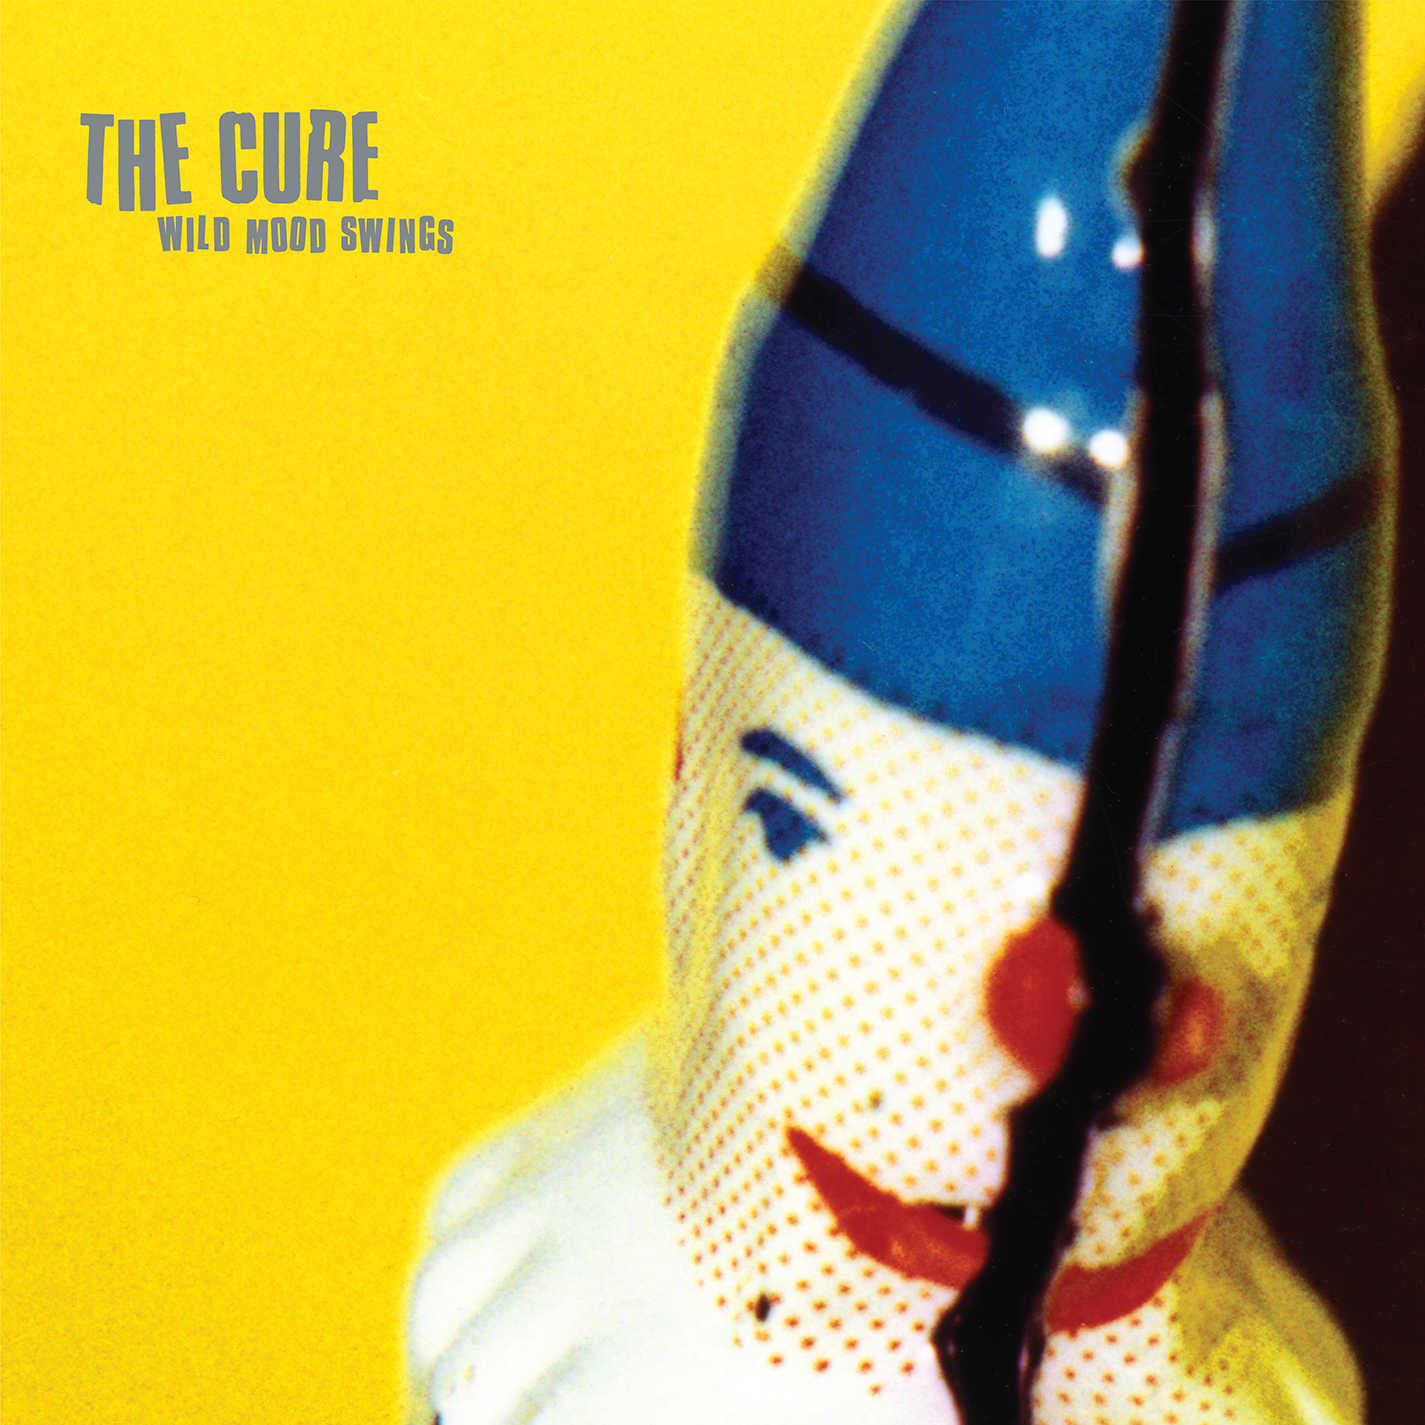 The Cure - Wild Mood Swings [RSD Drops 2021]